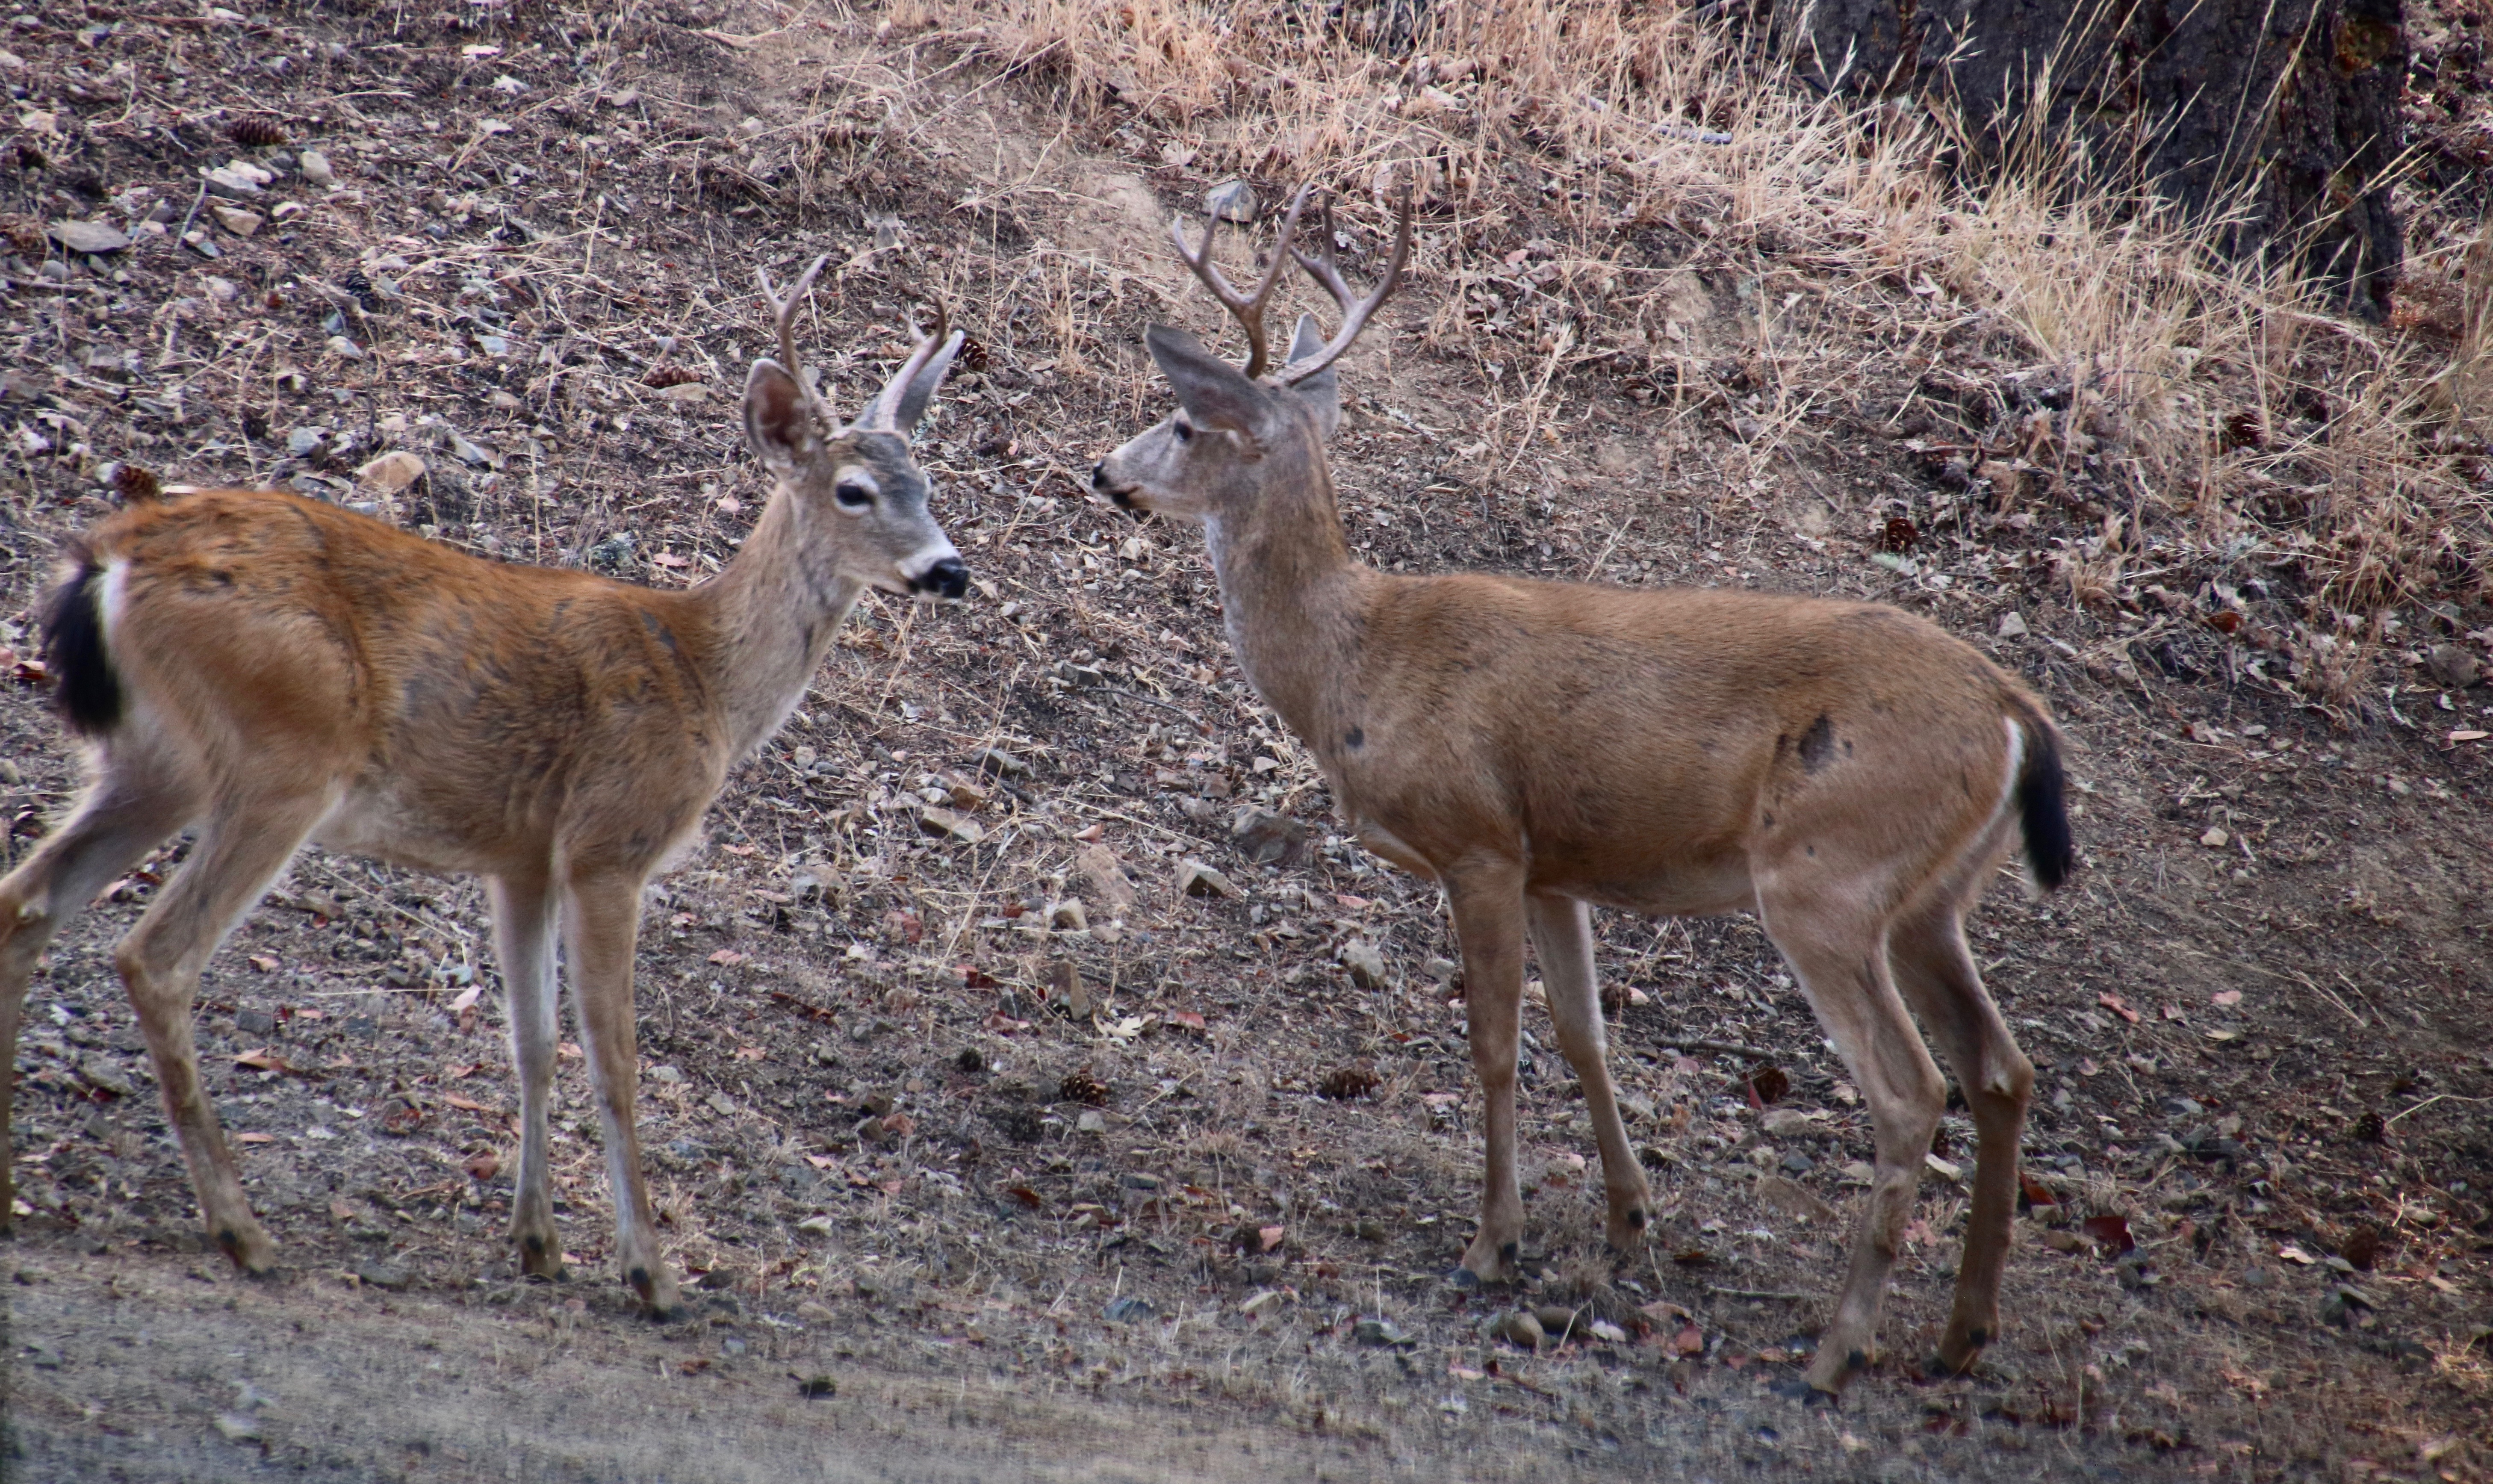 Black tail bucks check each other out in preparation for mating season. Photo by Curtis Mekemson.